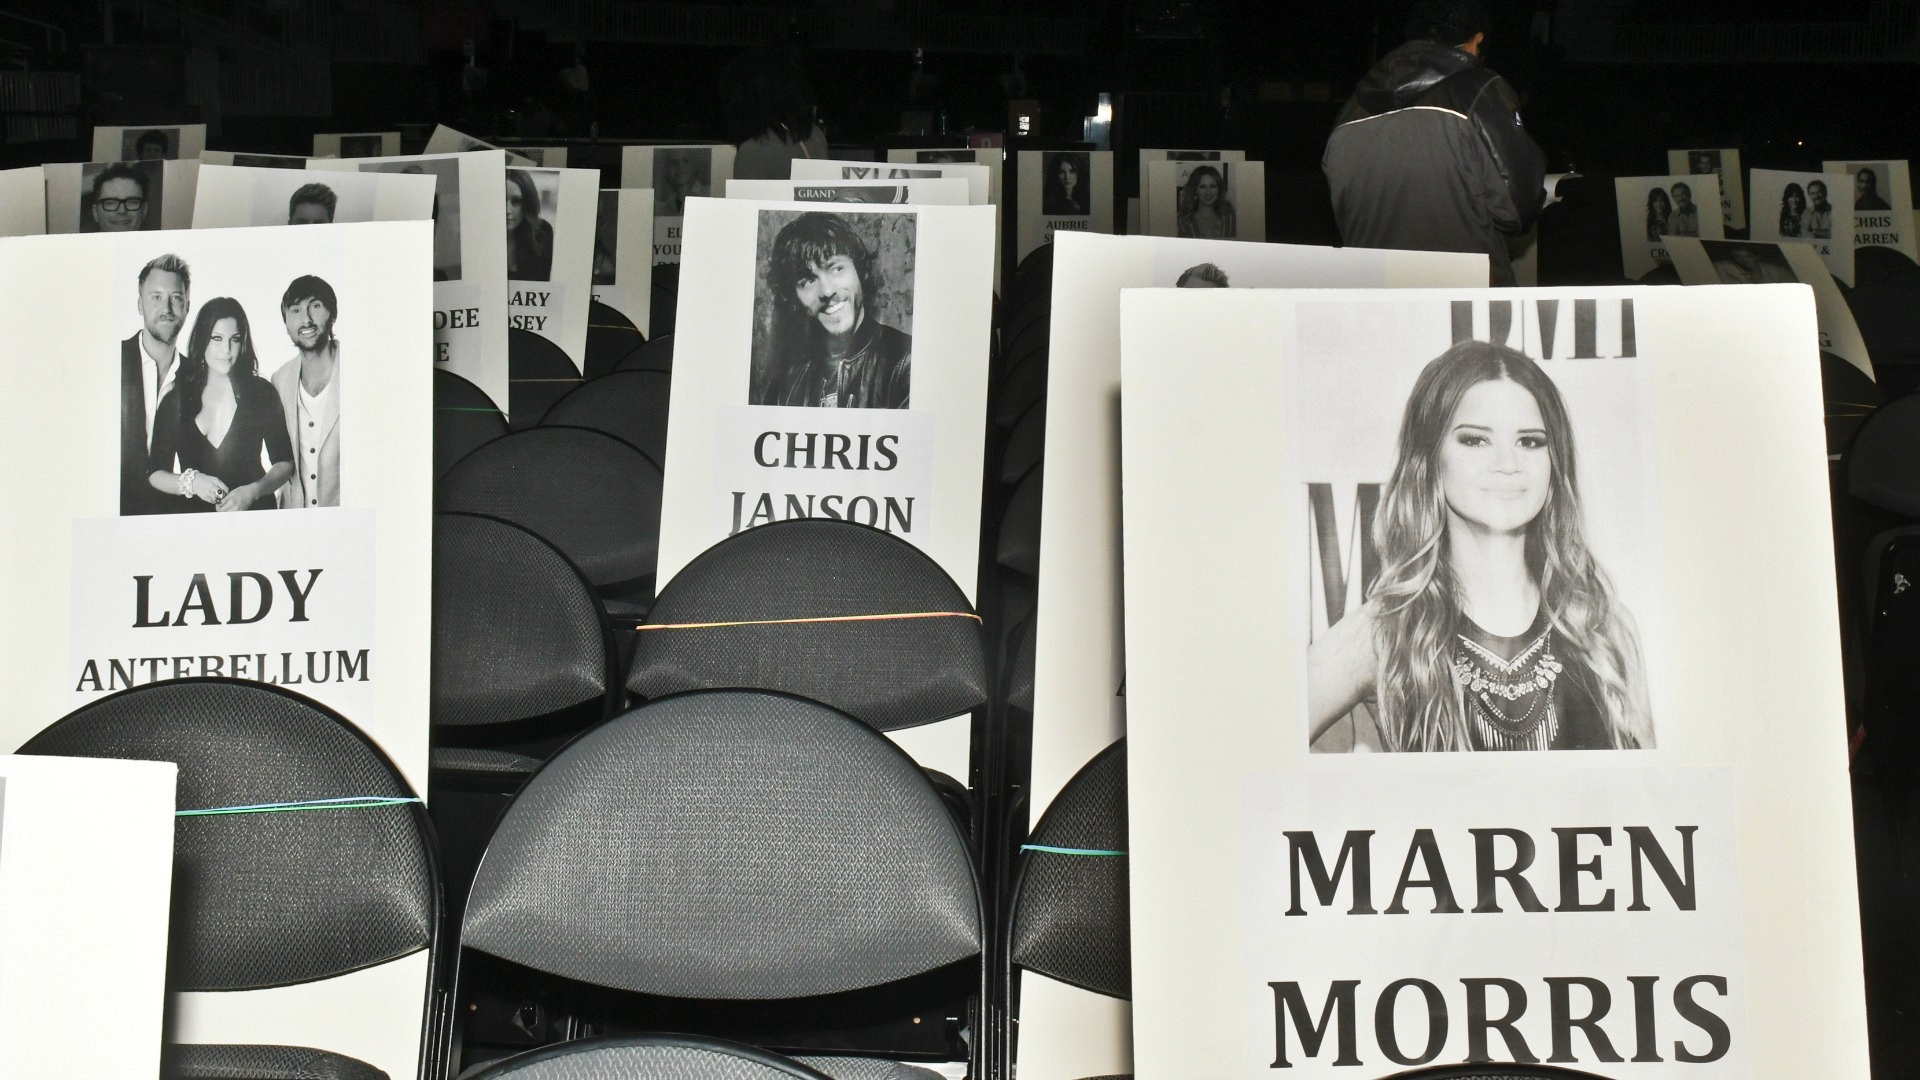 Nominees Lady Antebellum, Chris Janson, and Maren Morris make for one talented audience.